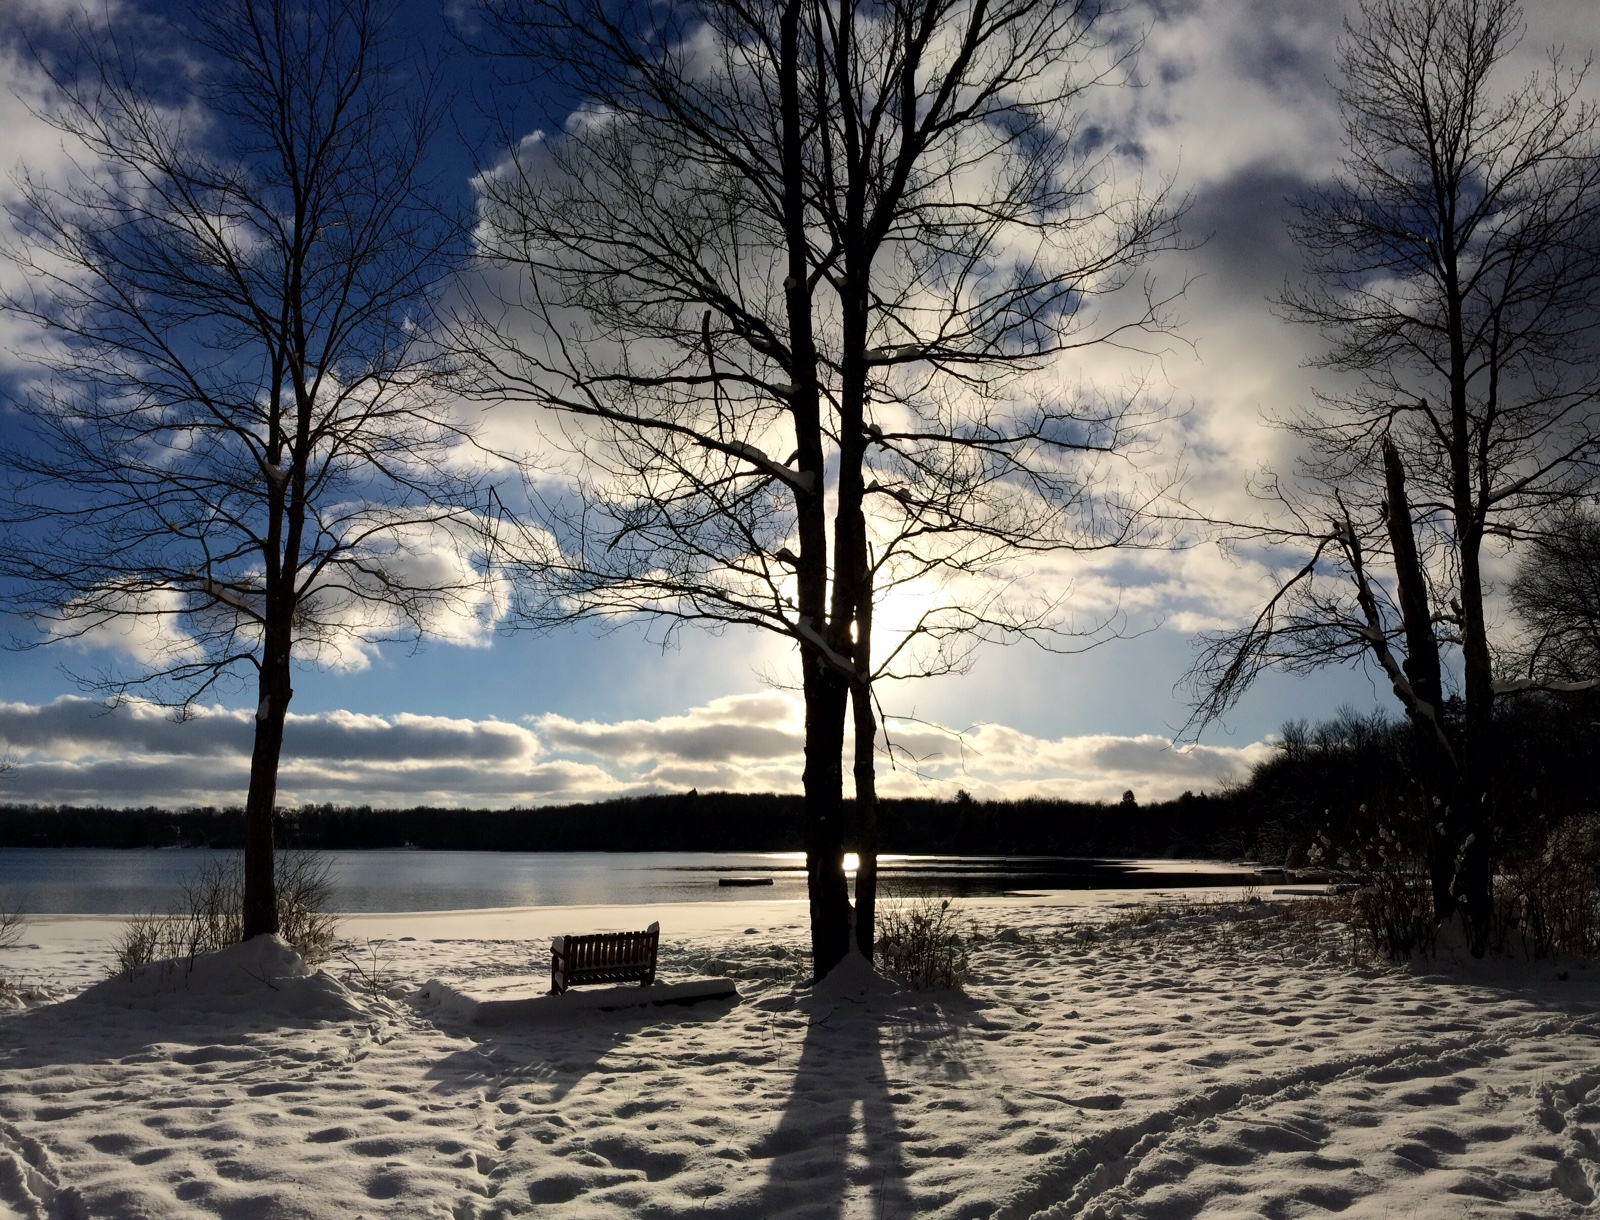 Lakeside in Winter